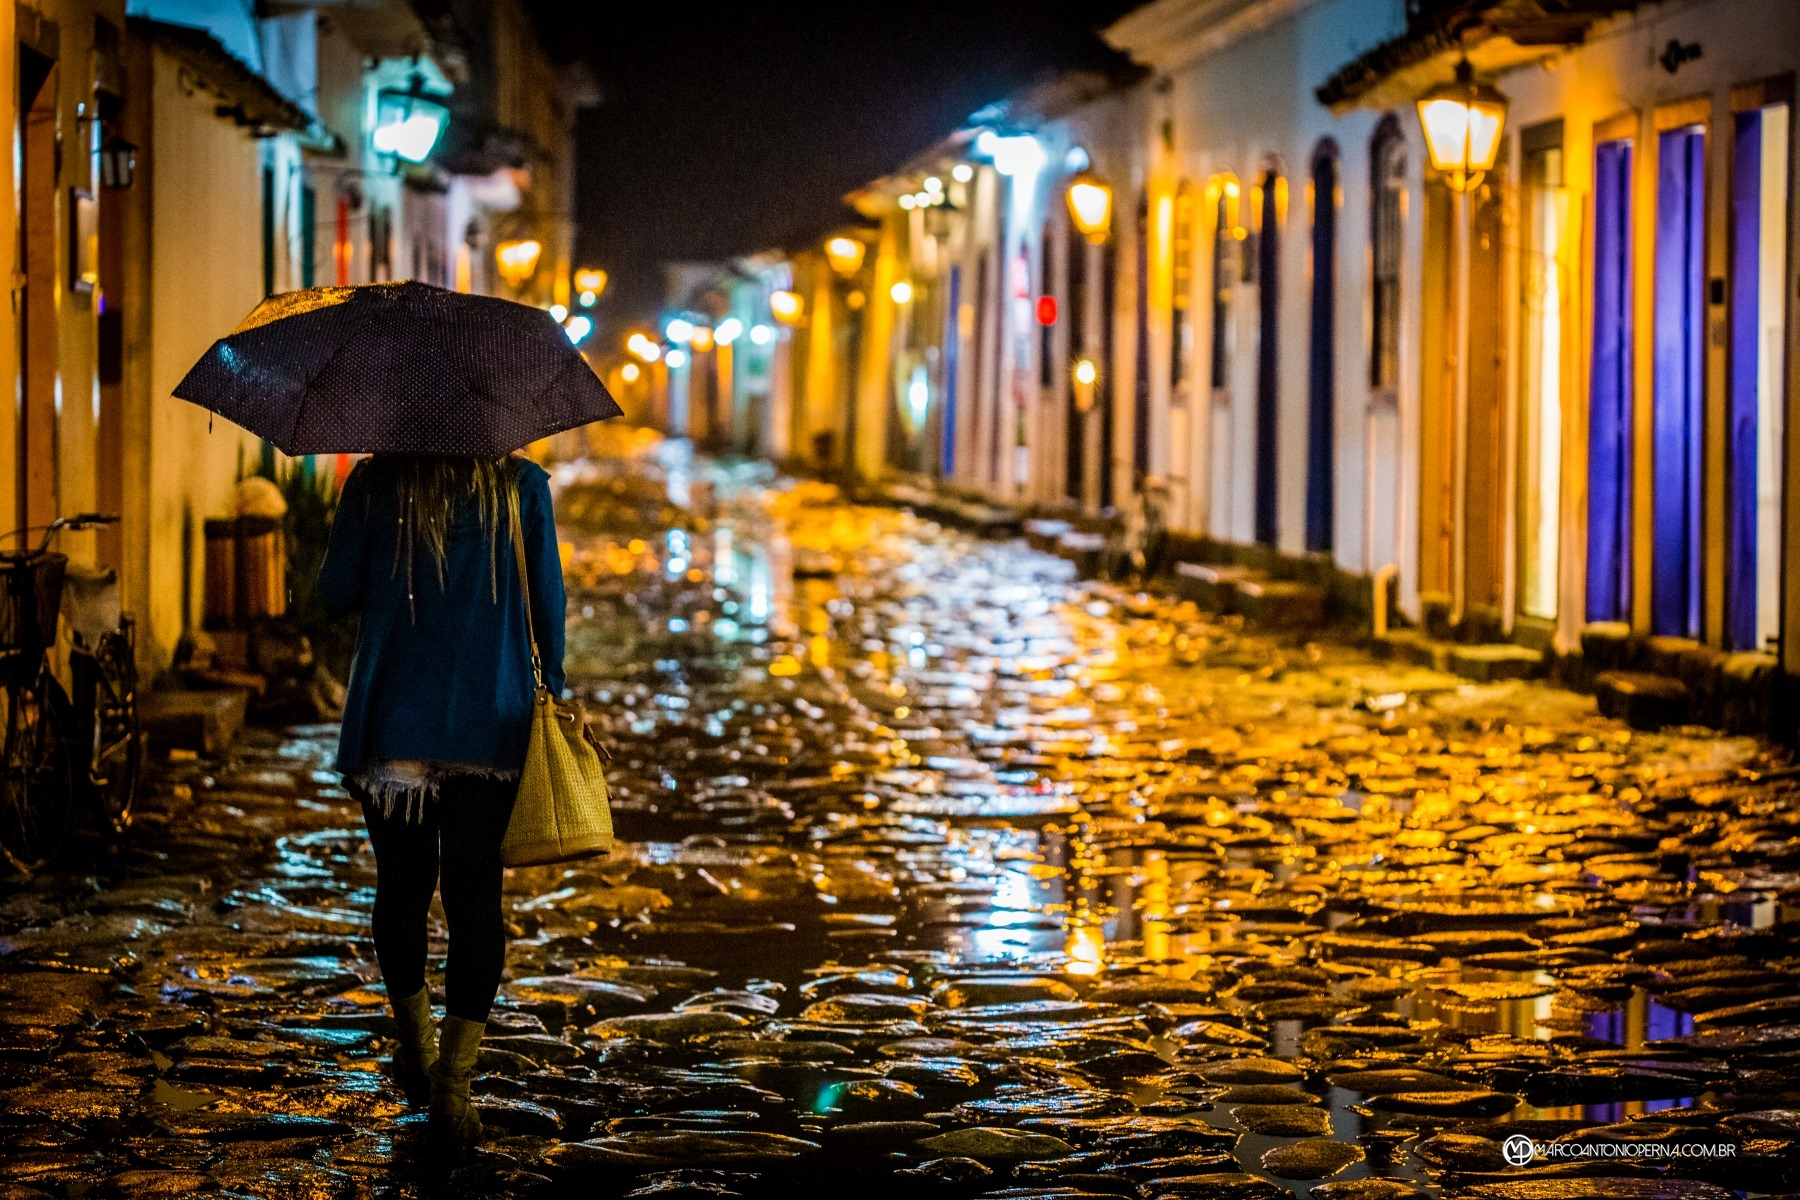 Rainy night in Paraty -